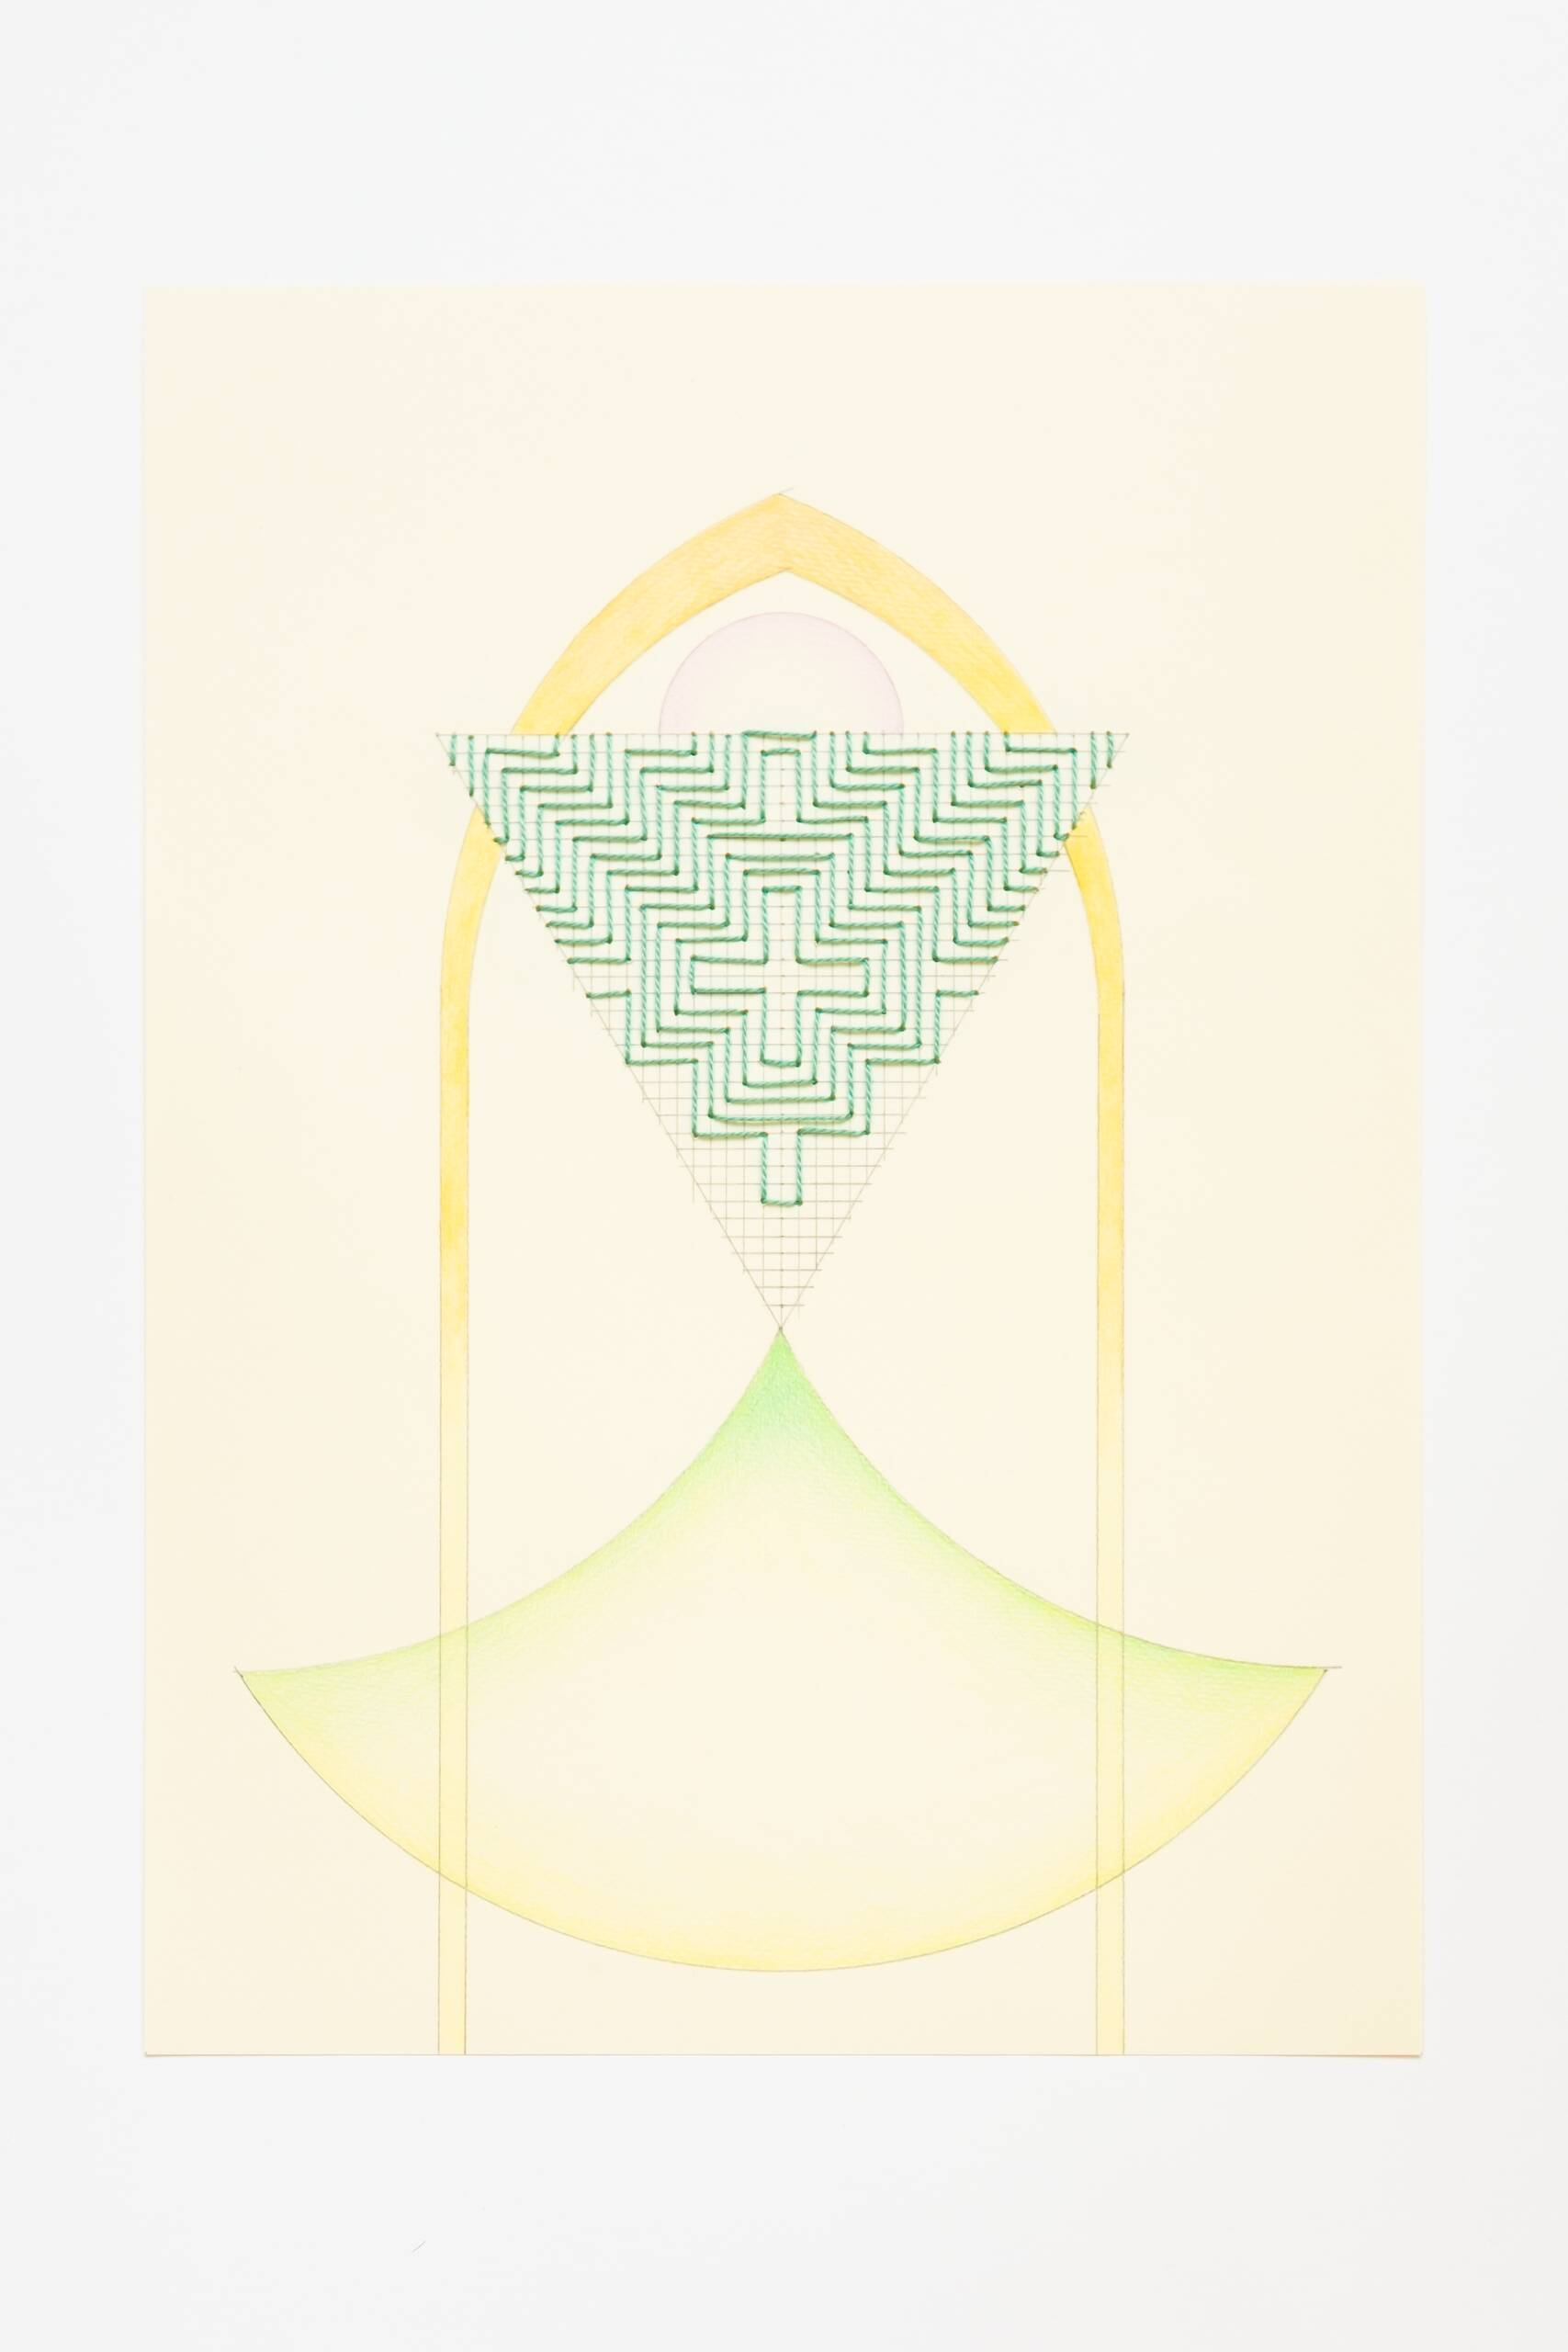 Sashiko triangle [green on yellow], Hand-embroidered cotton thread, pencil and colored pencil on paper, 2020